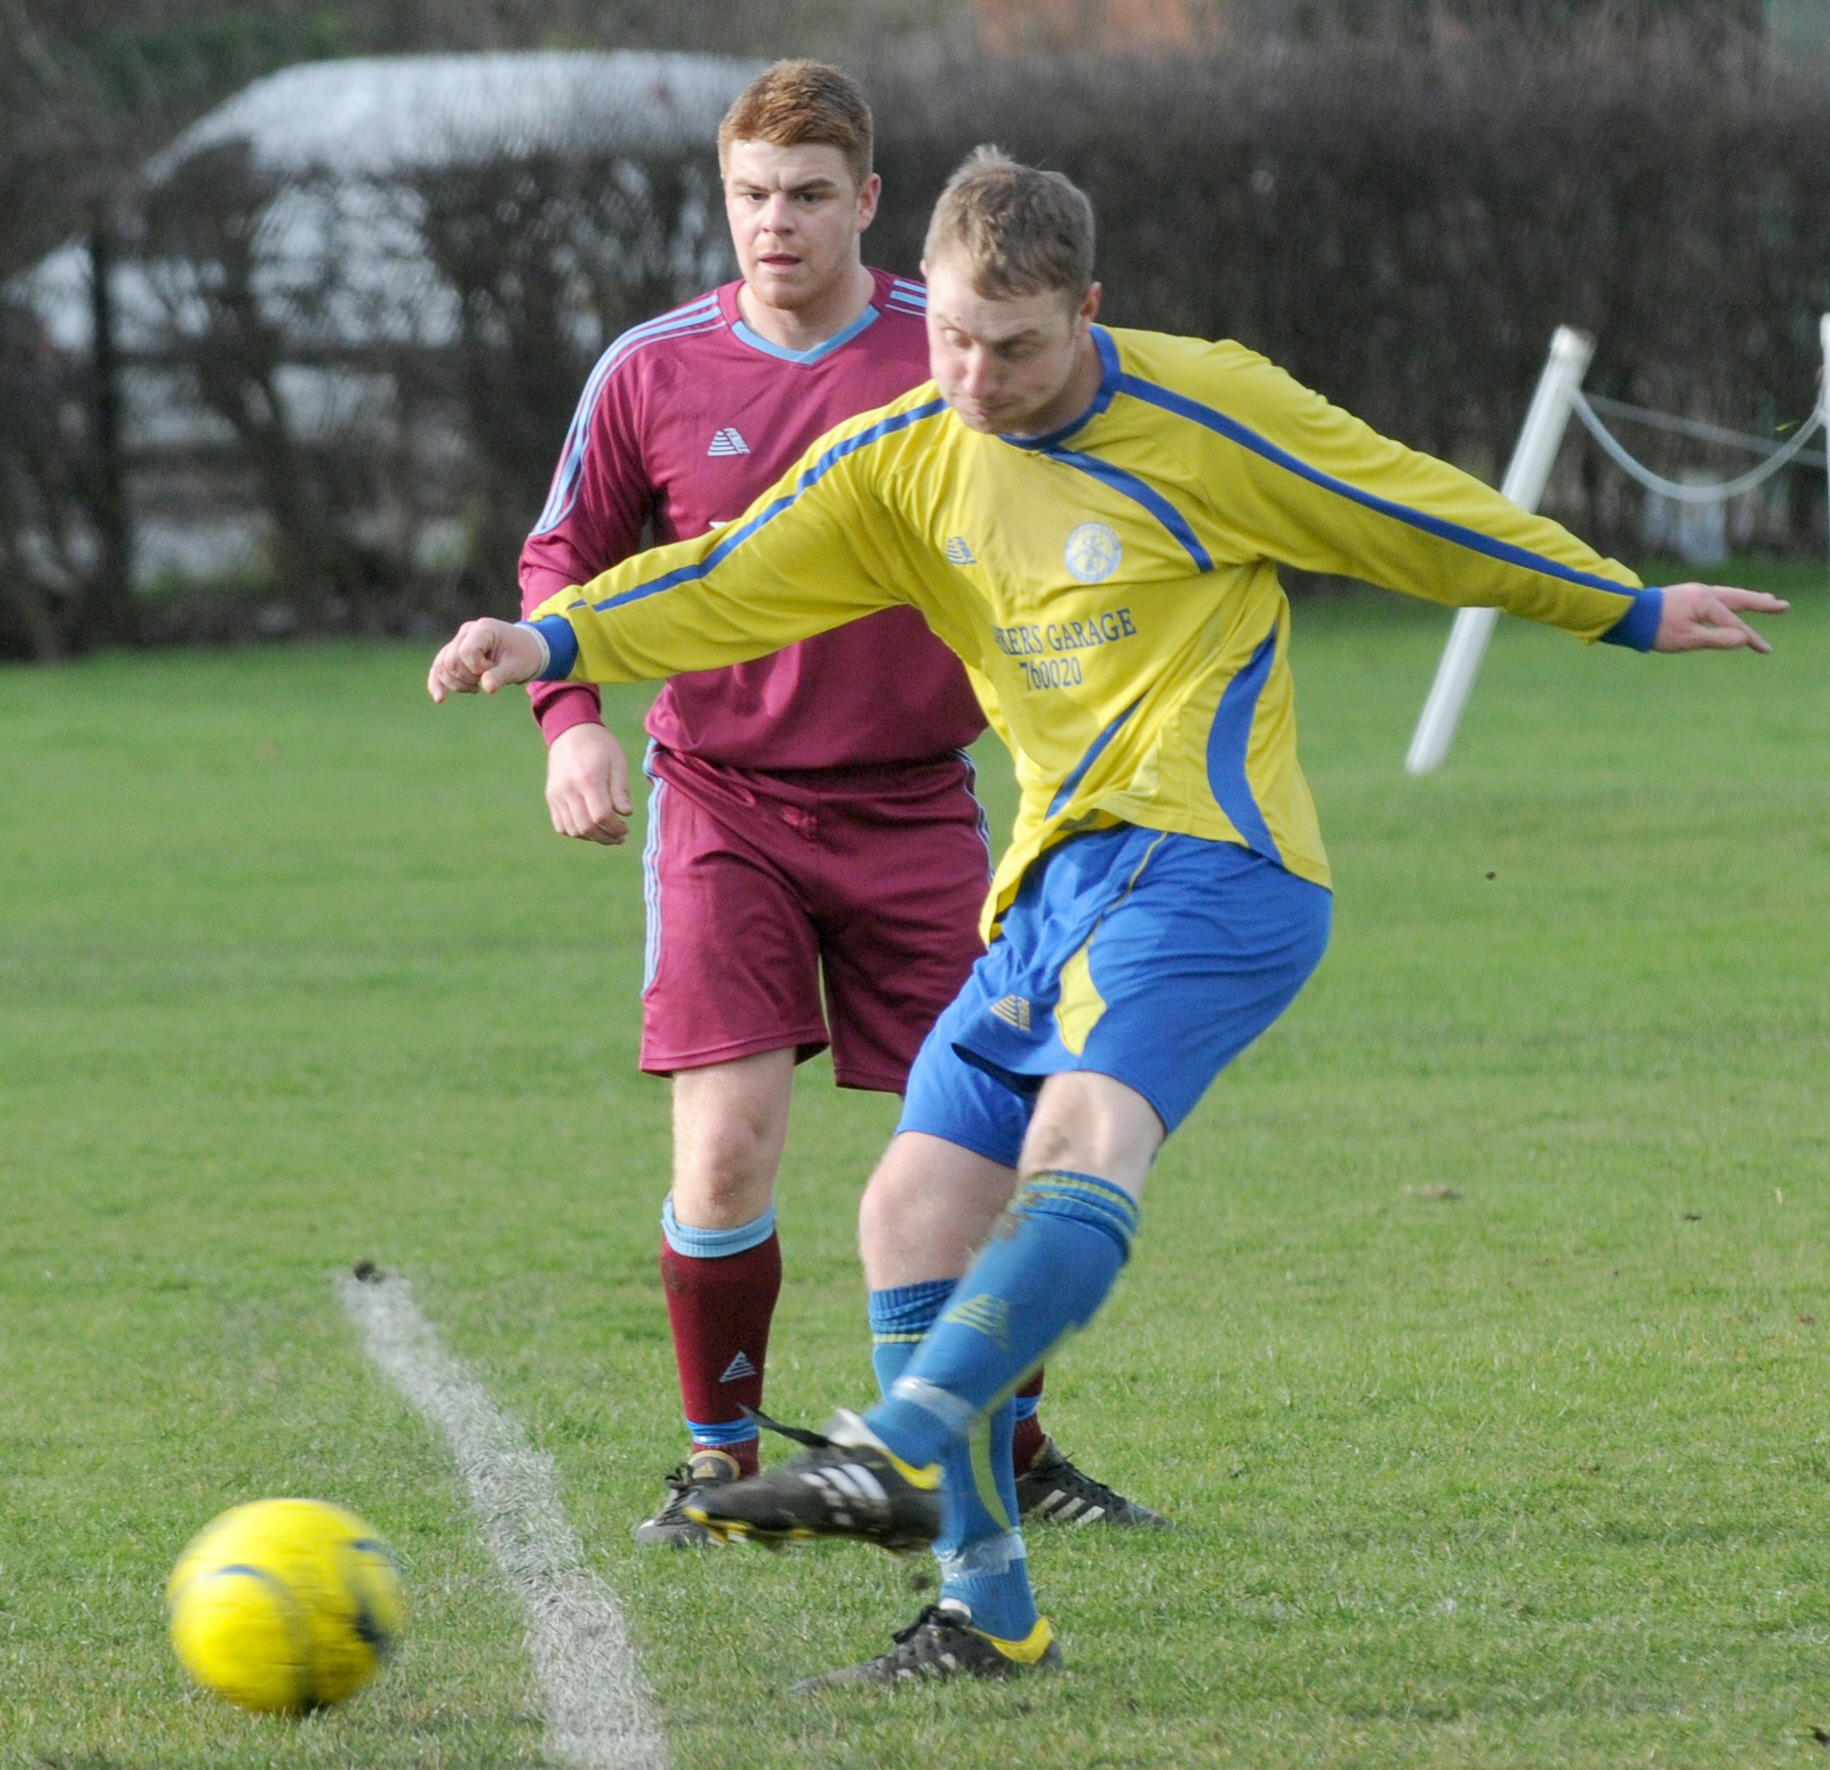 Lee Bunce, who scored a hat-trick in Huntington Rovers Reserves' win over their Hemingbrough United counterparts